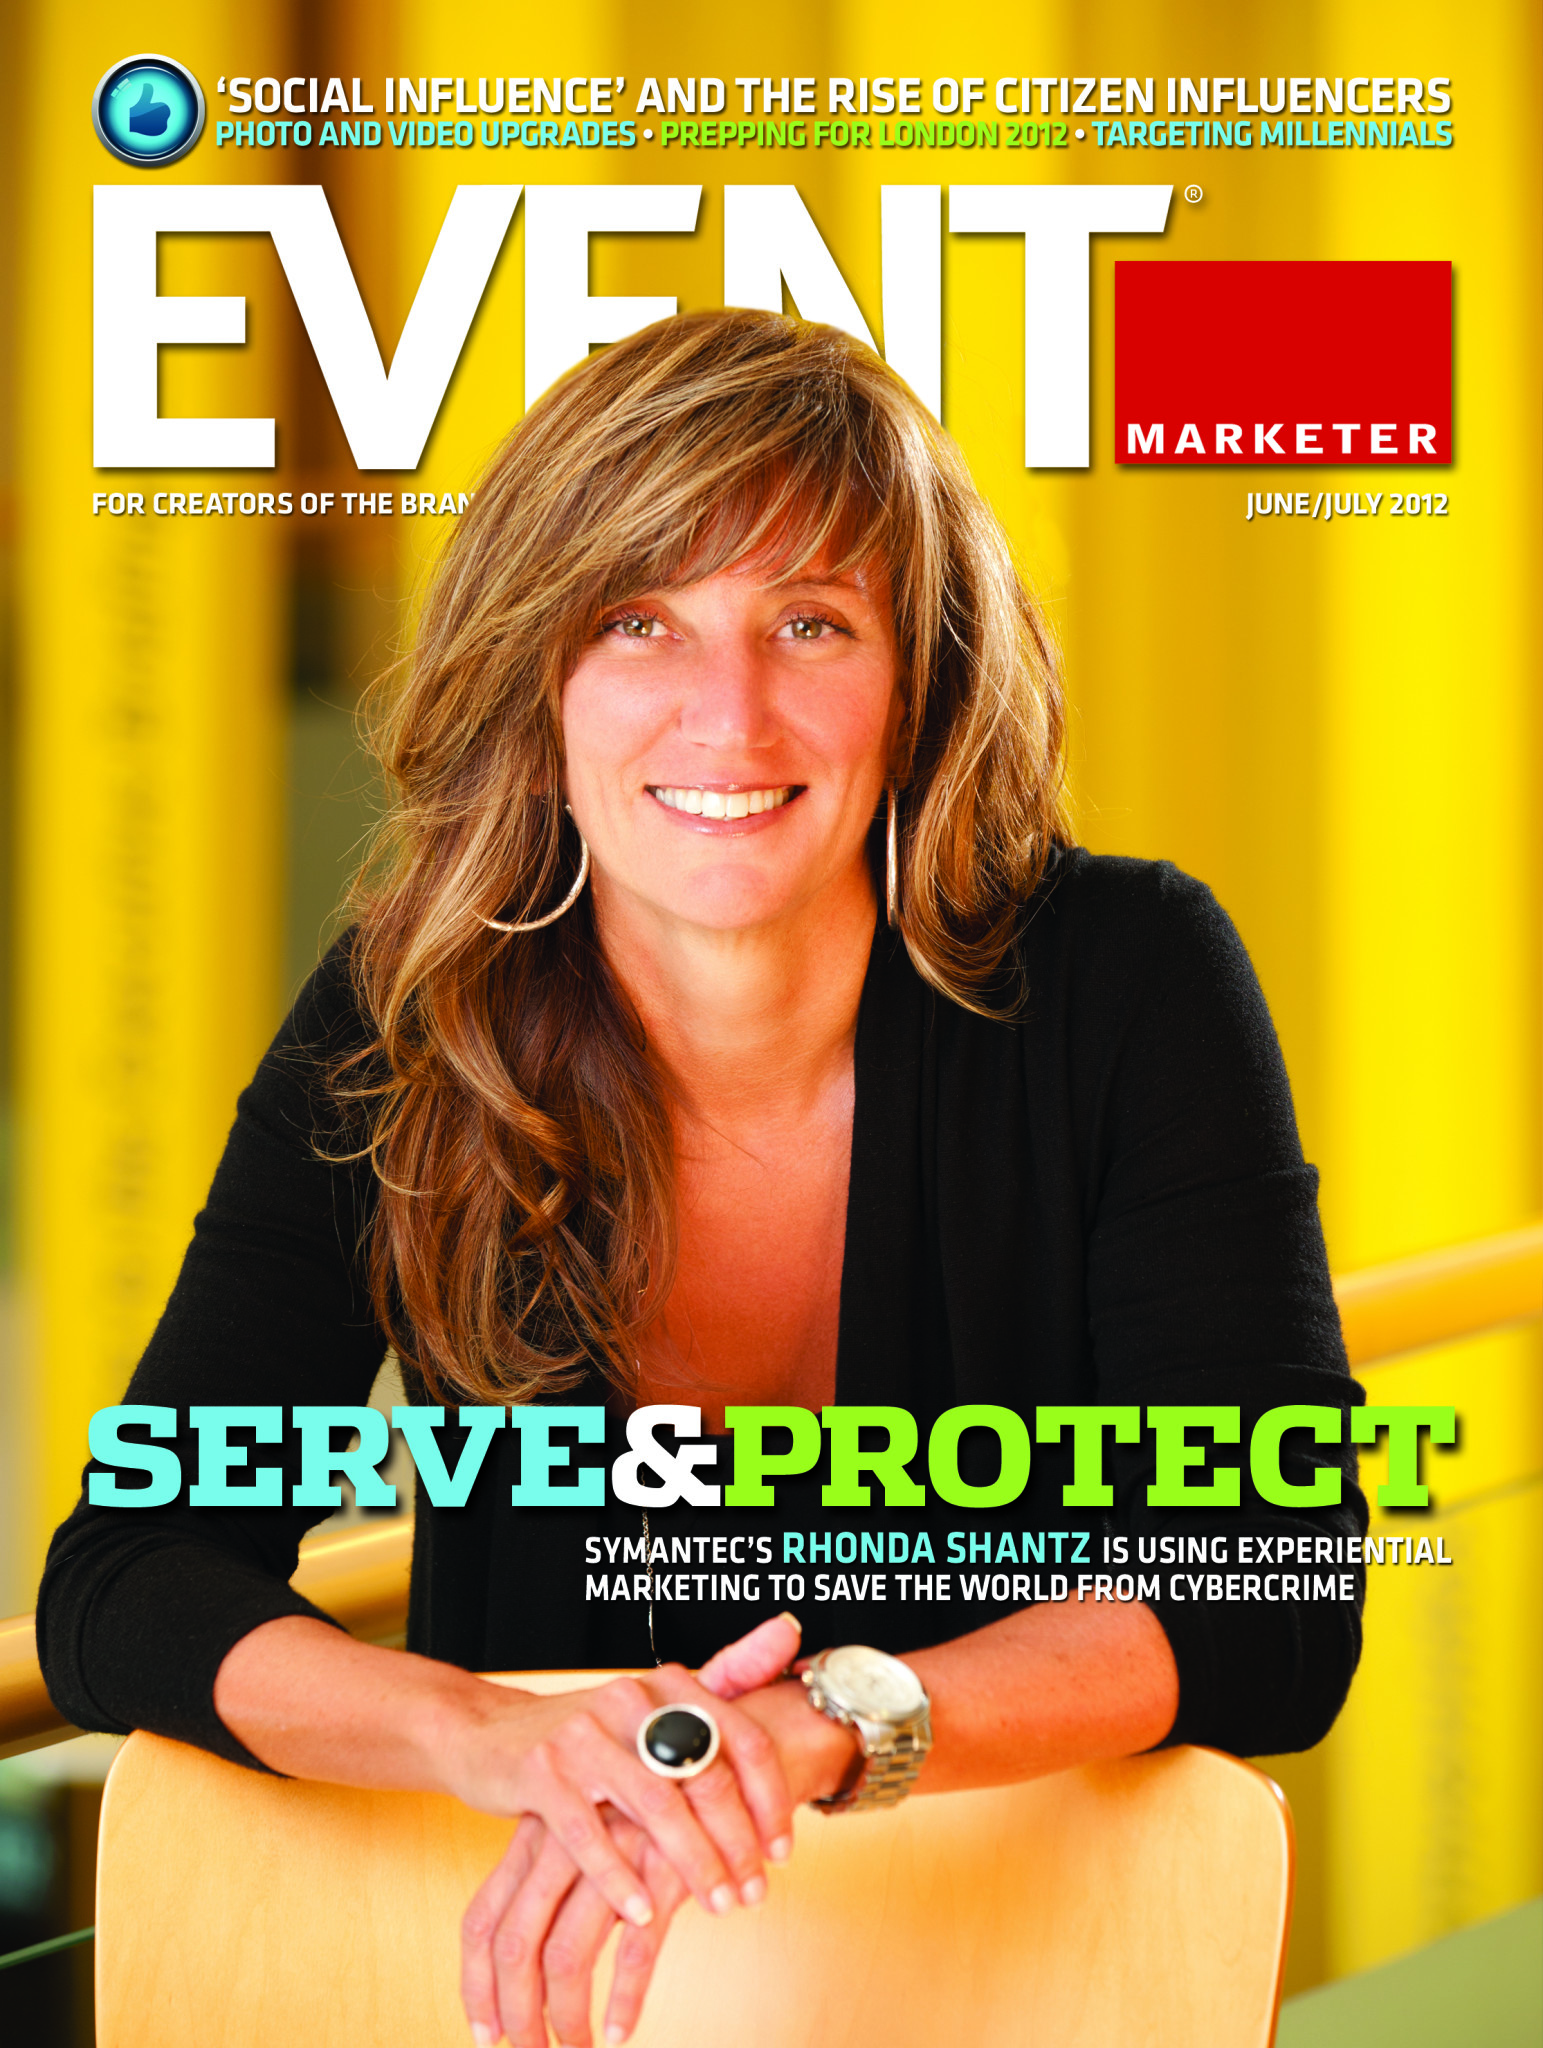 Event Marketer June/July 2012